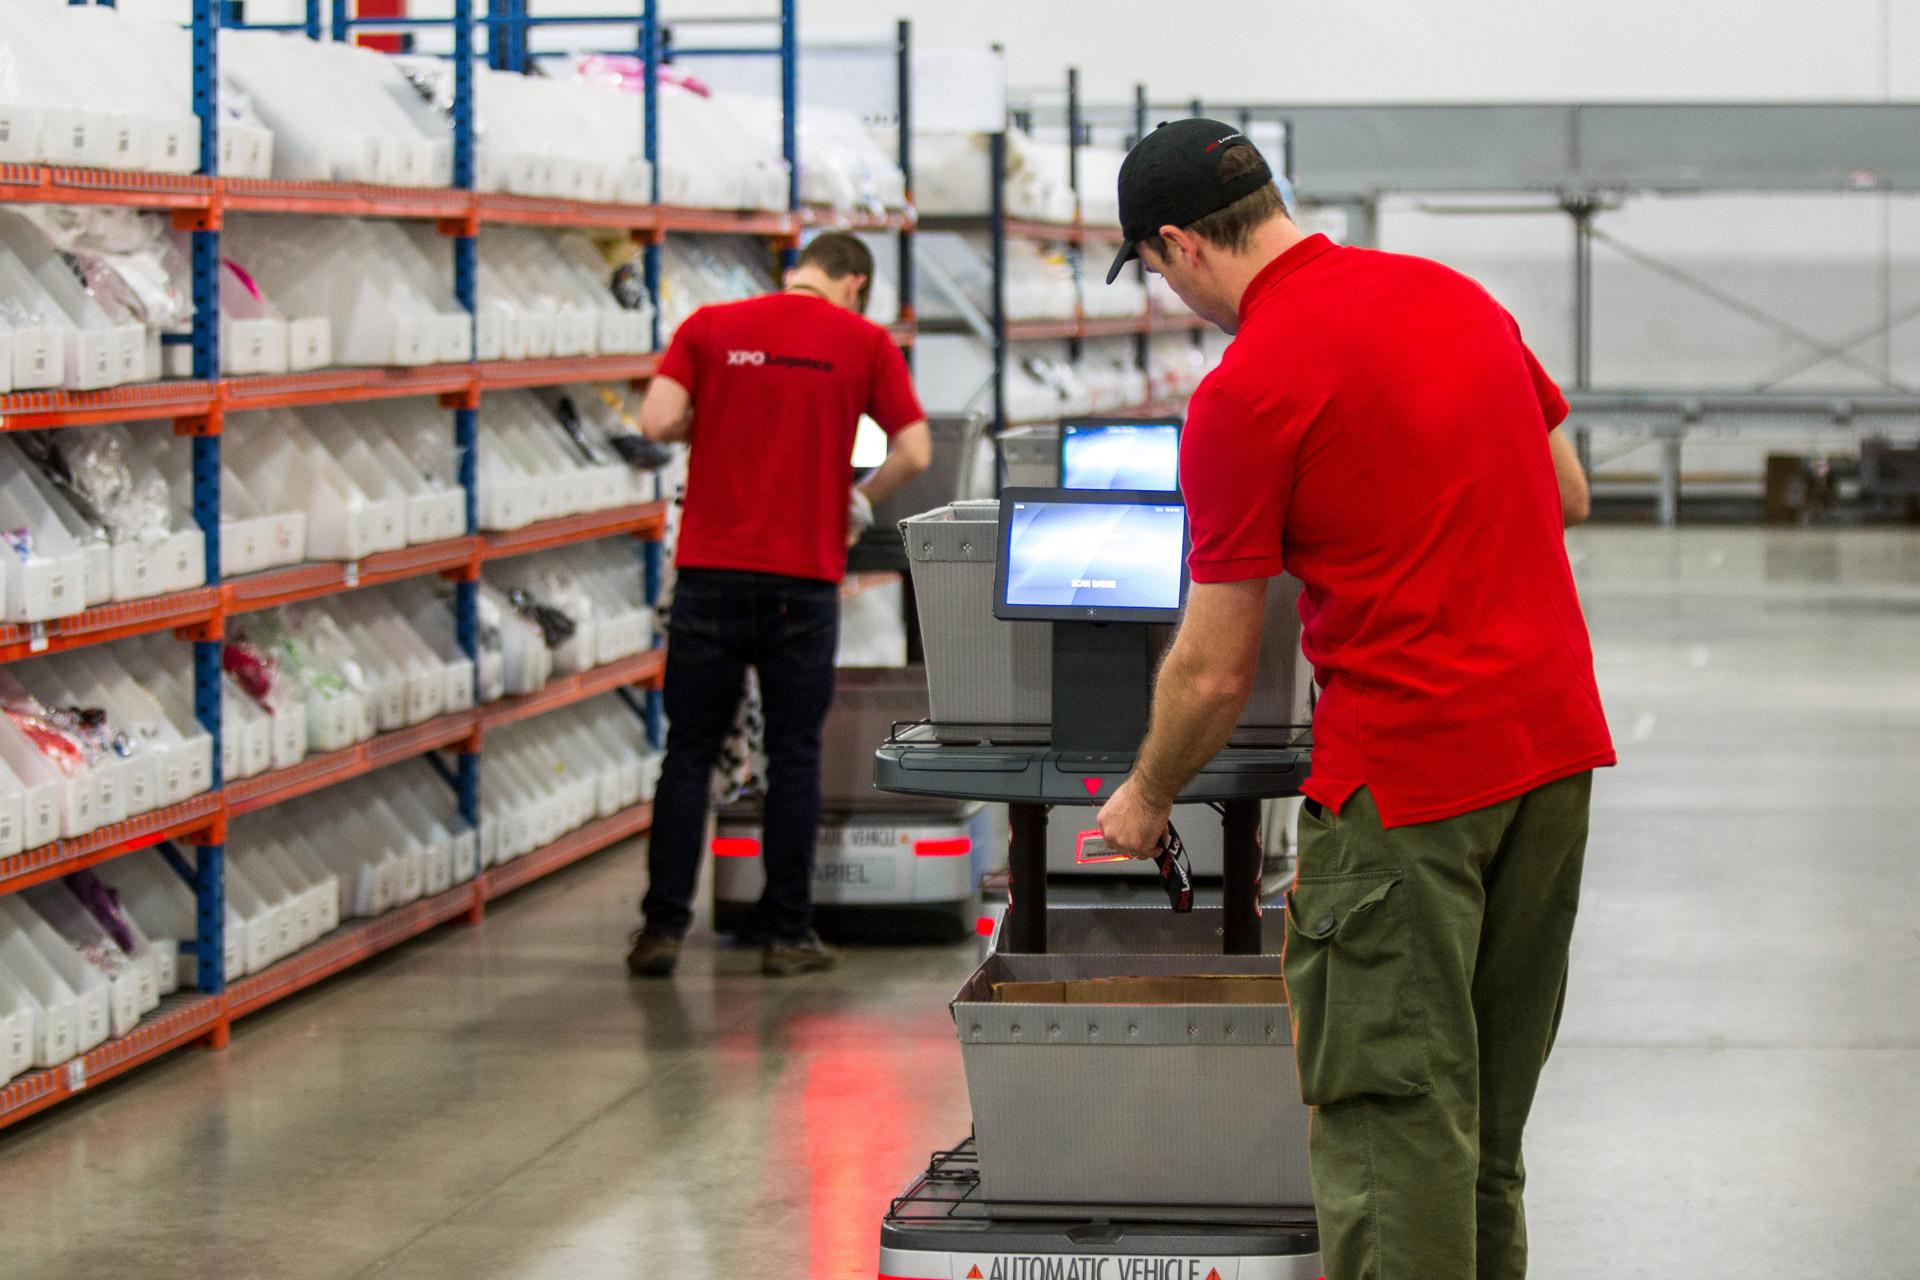 XPO employees partner with 6 River Systems collaborative robots to aid in picking and packing